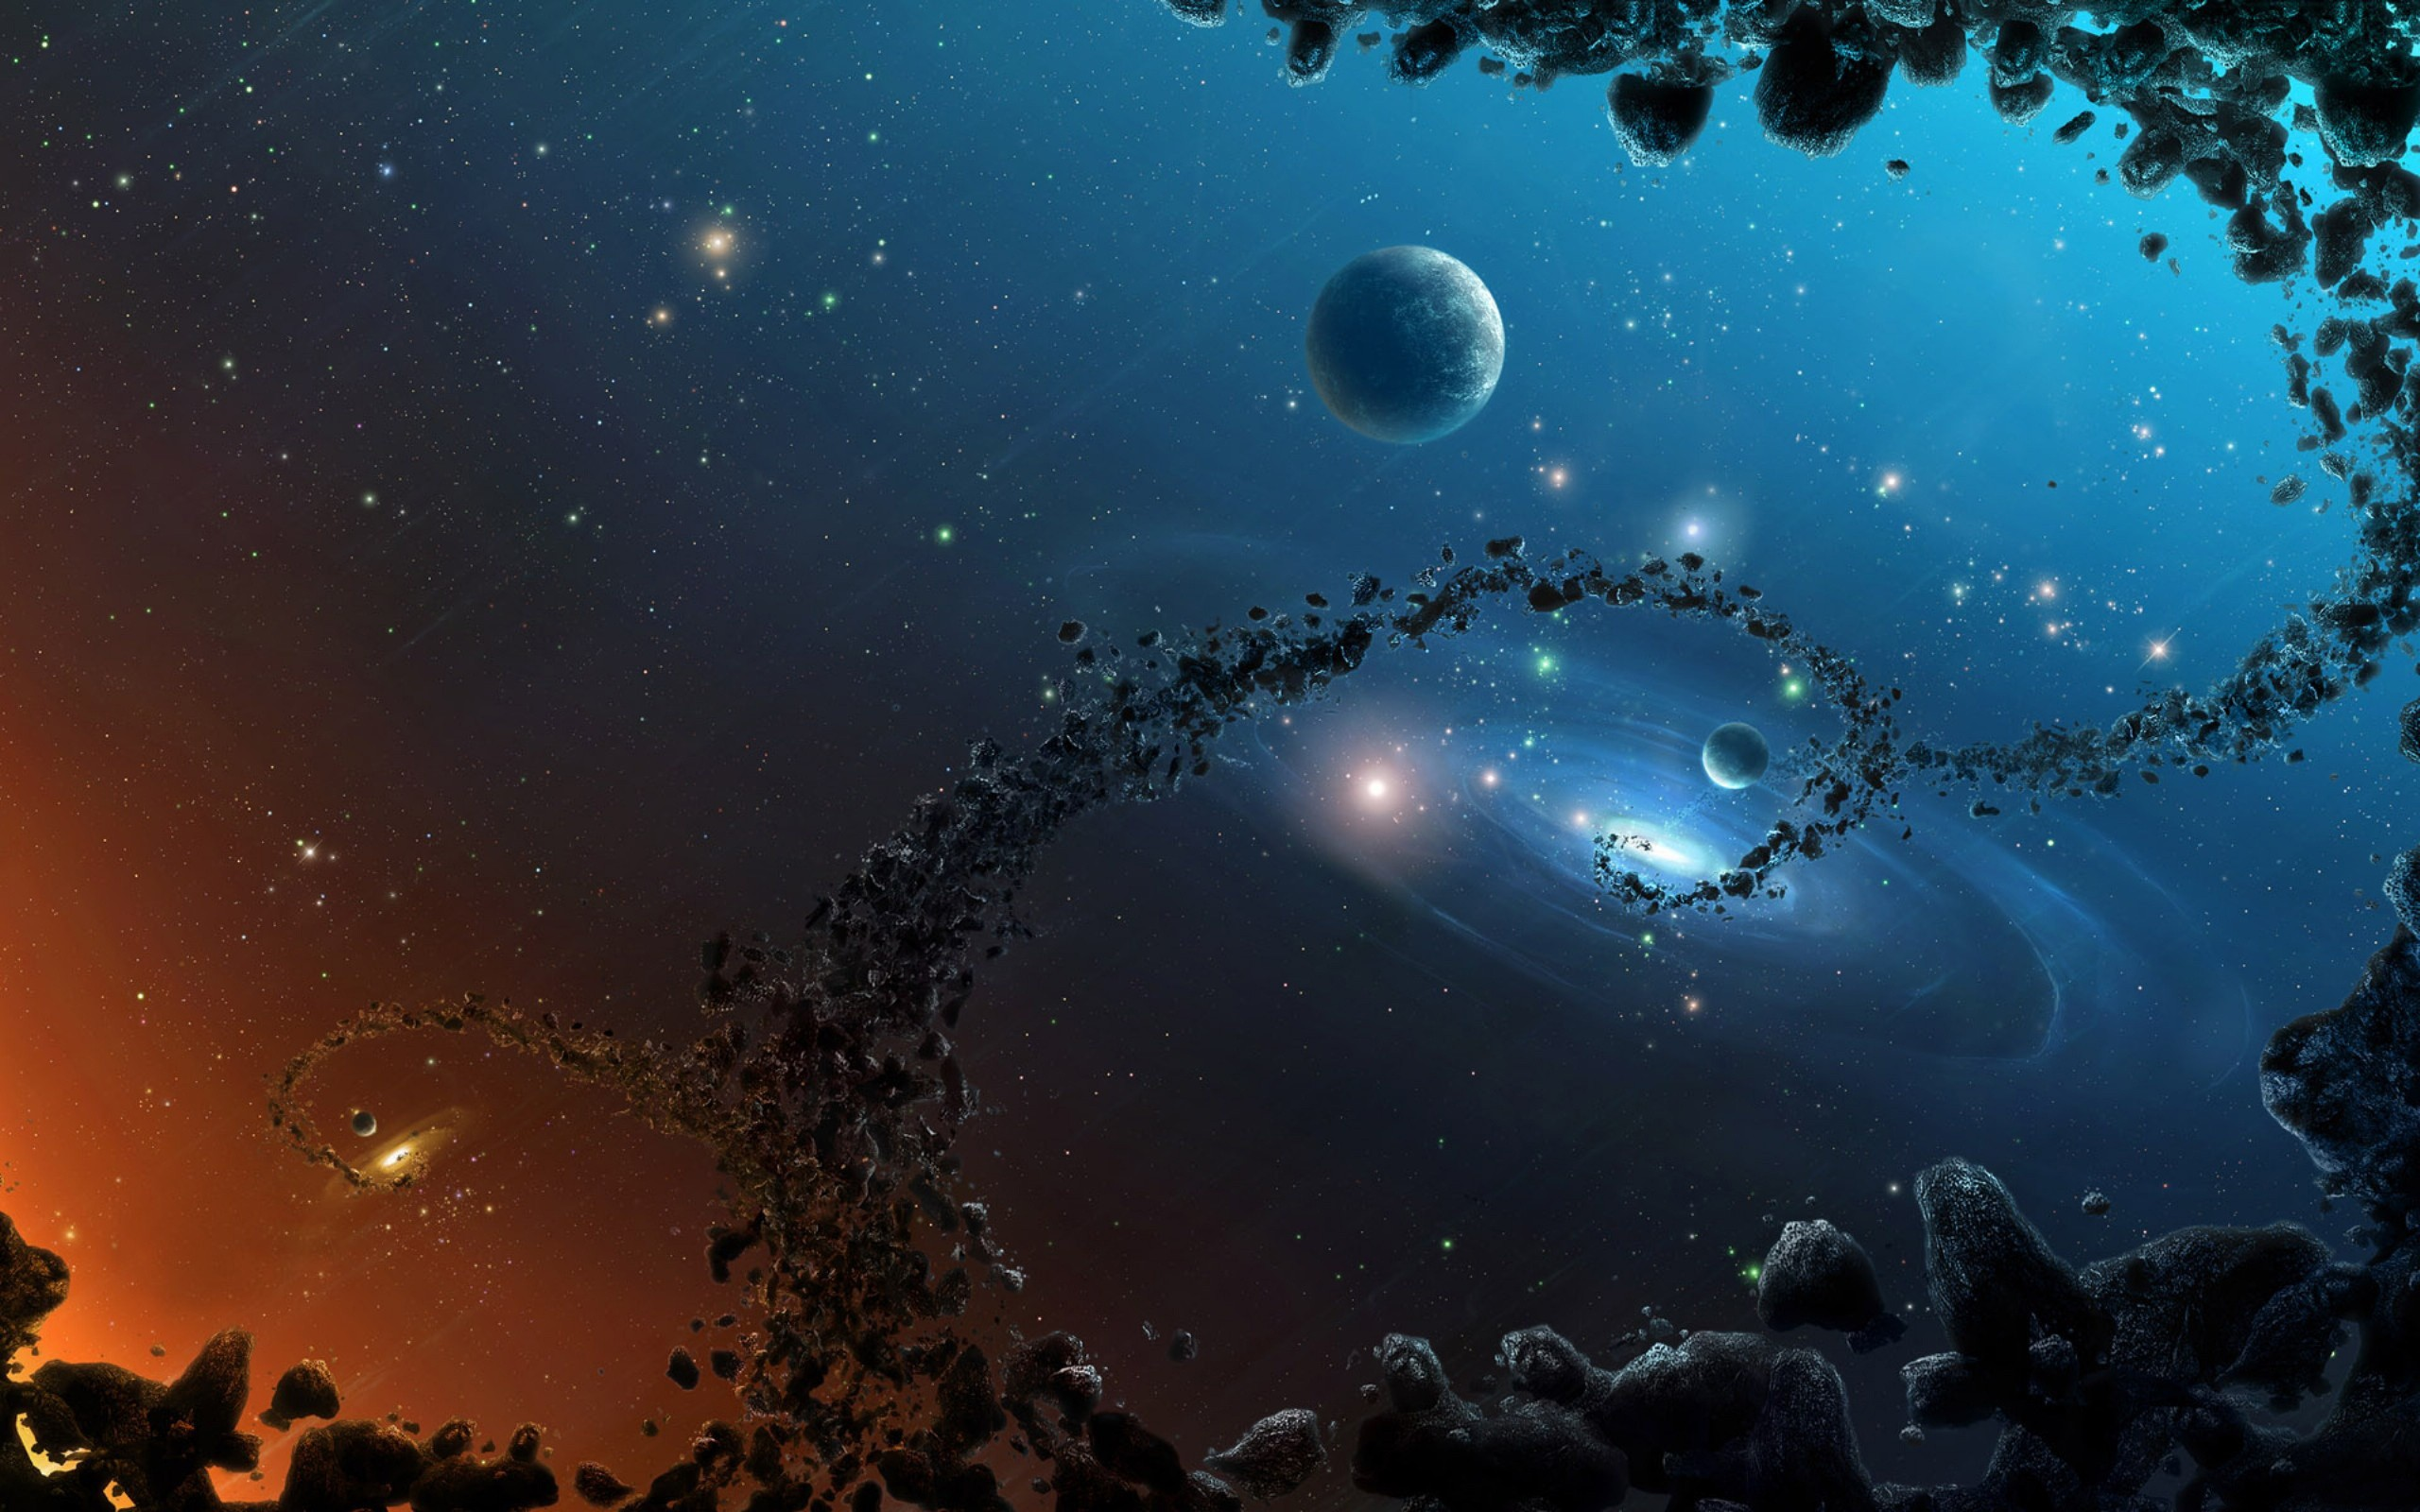 Space Wallpaper Widescreen wallpaper - 1059276